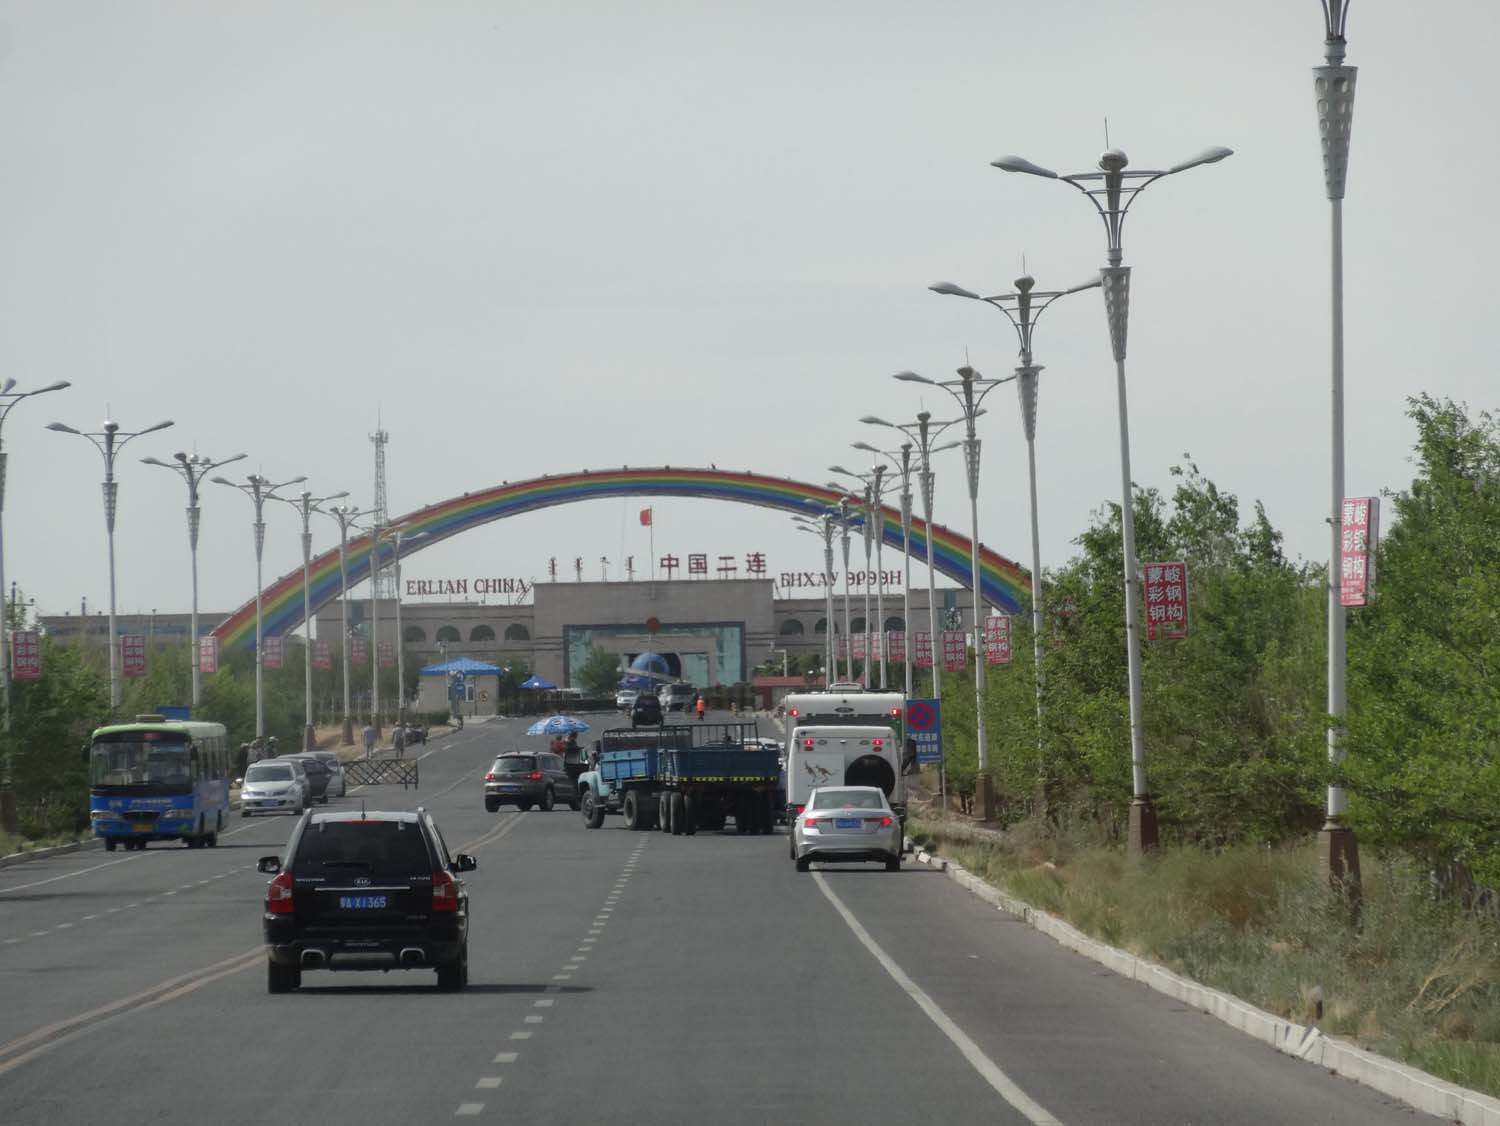 the checkpoint before the Chinese exit